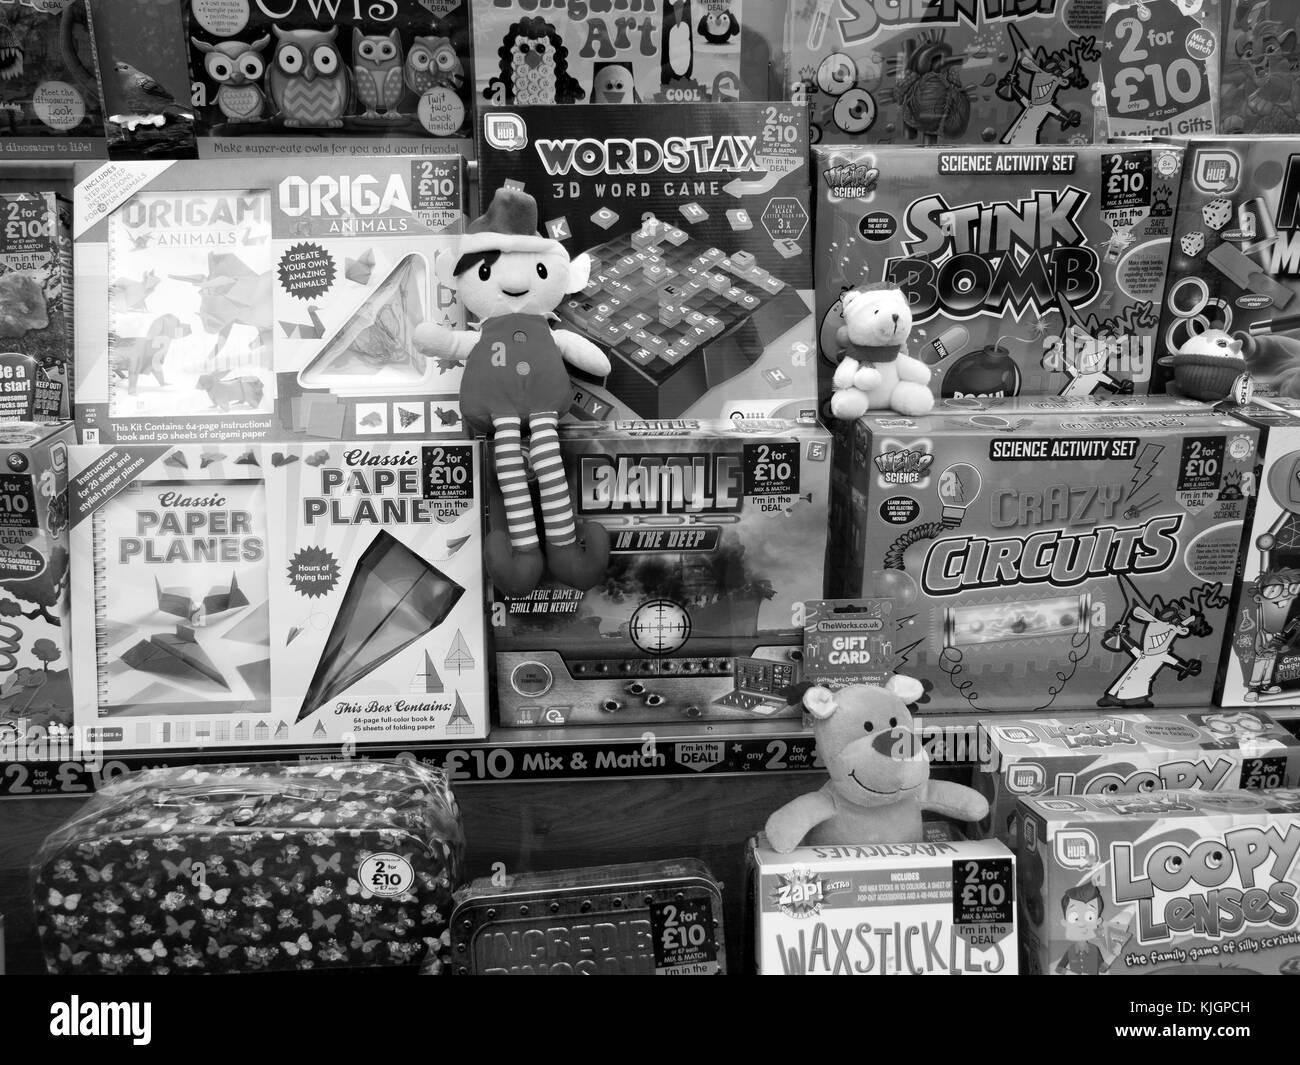 Shop Window Display Black and White Stock Photos & Images - Alamy